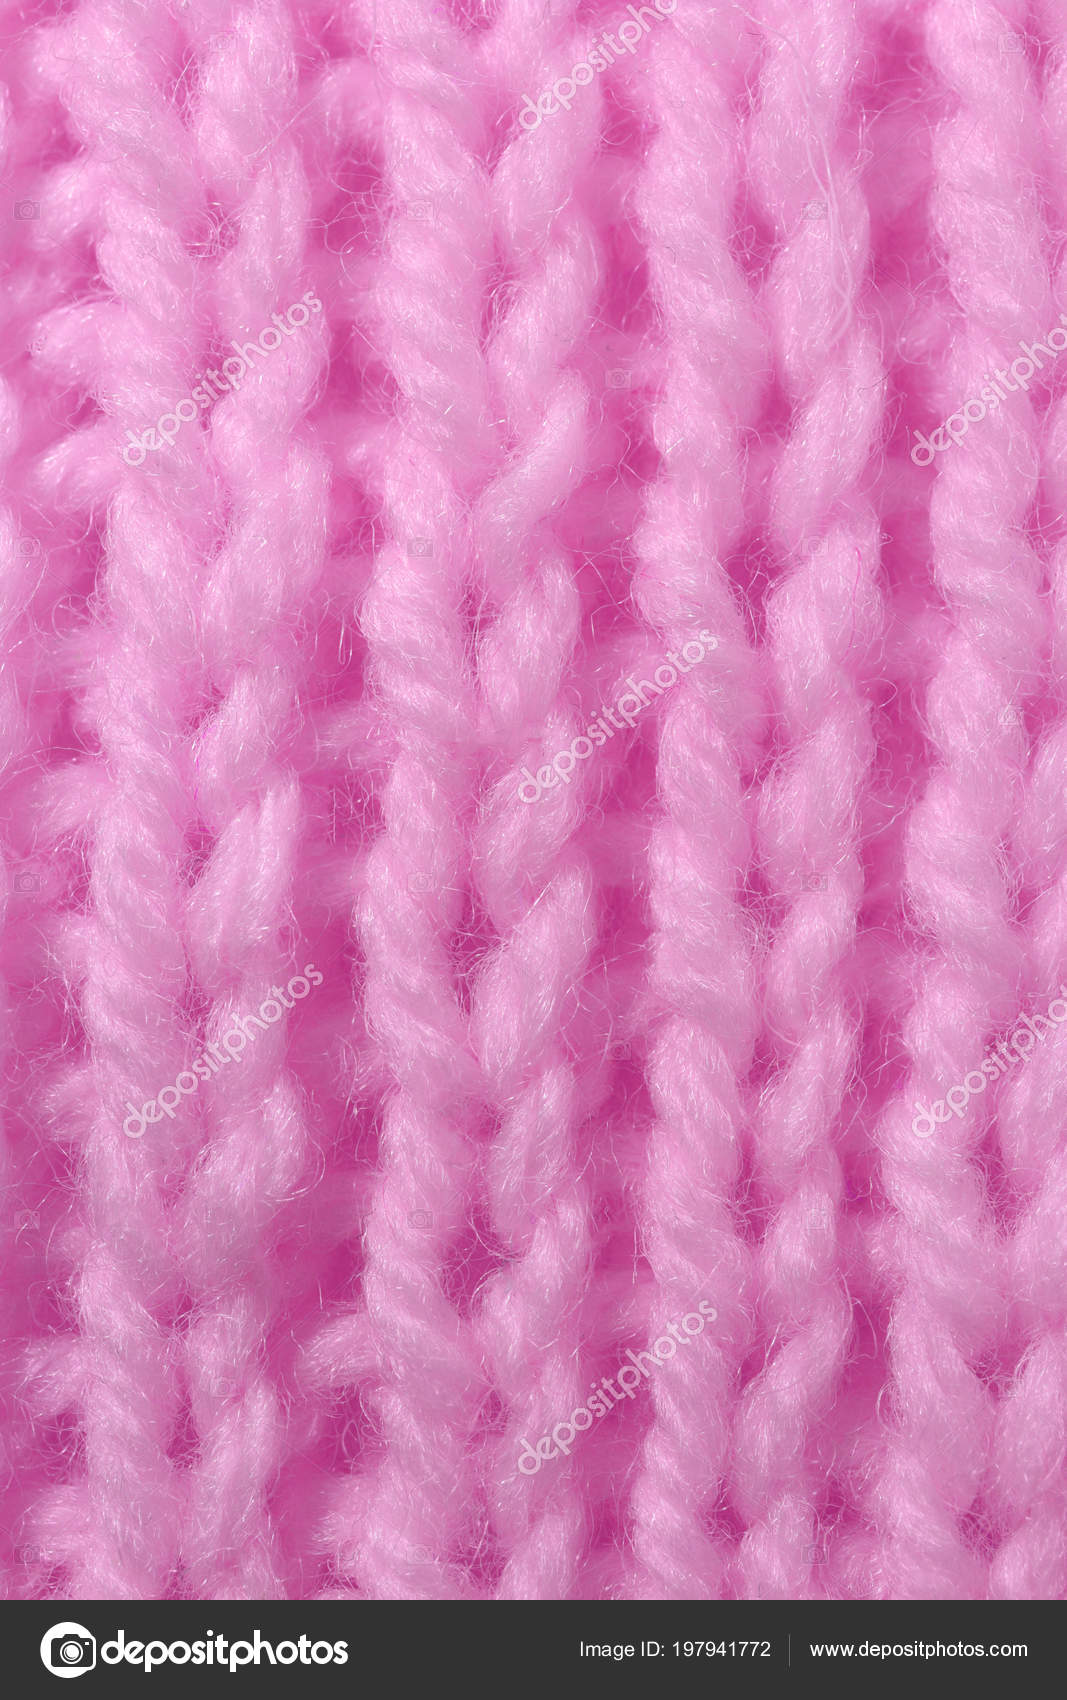 Pink Wool Knitting Texture Vertical Weaving Crochet Detailed Rows